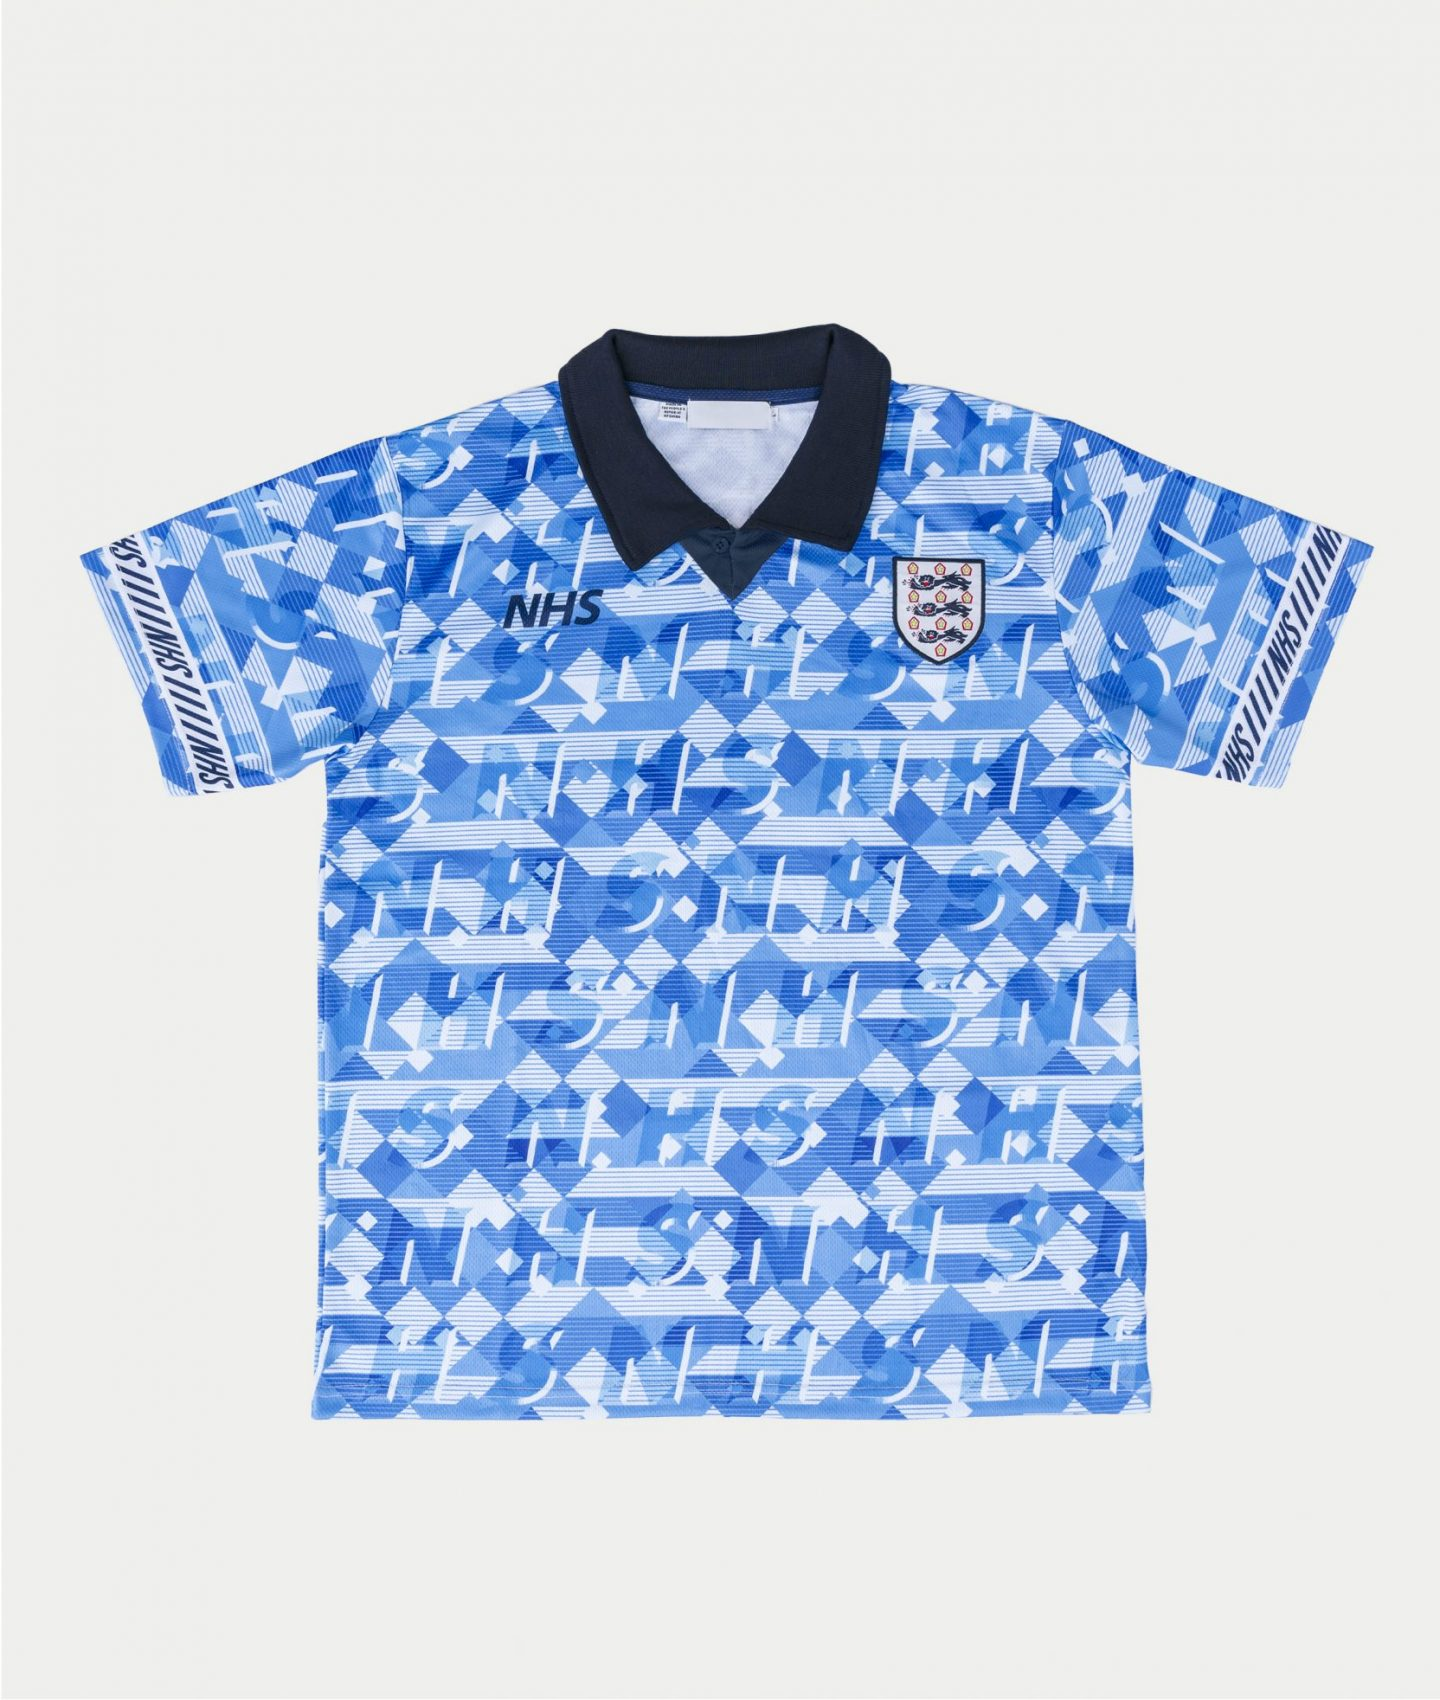 Introducing the NHS shirt from Art of Football